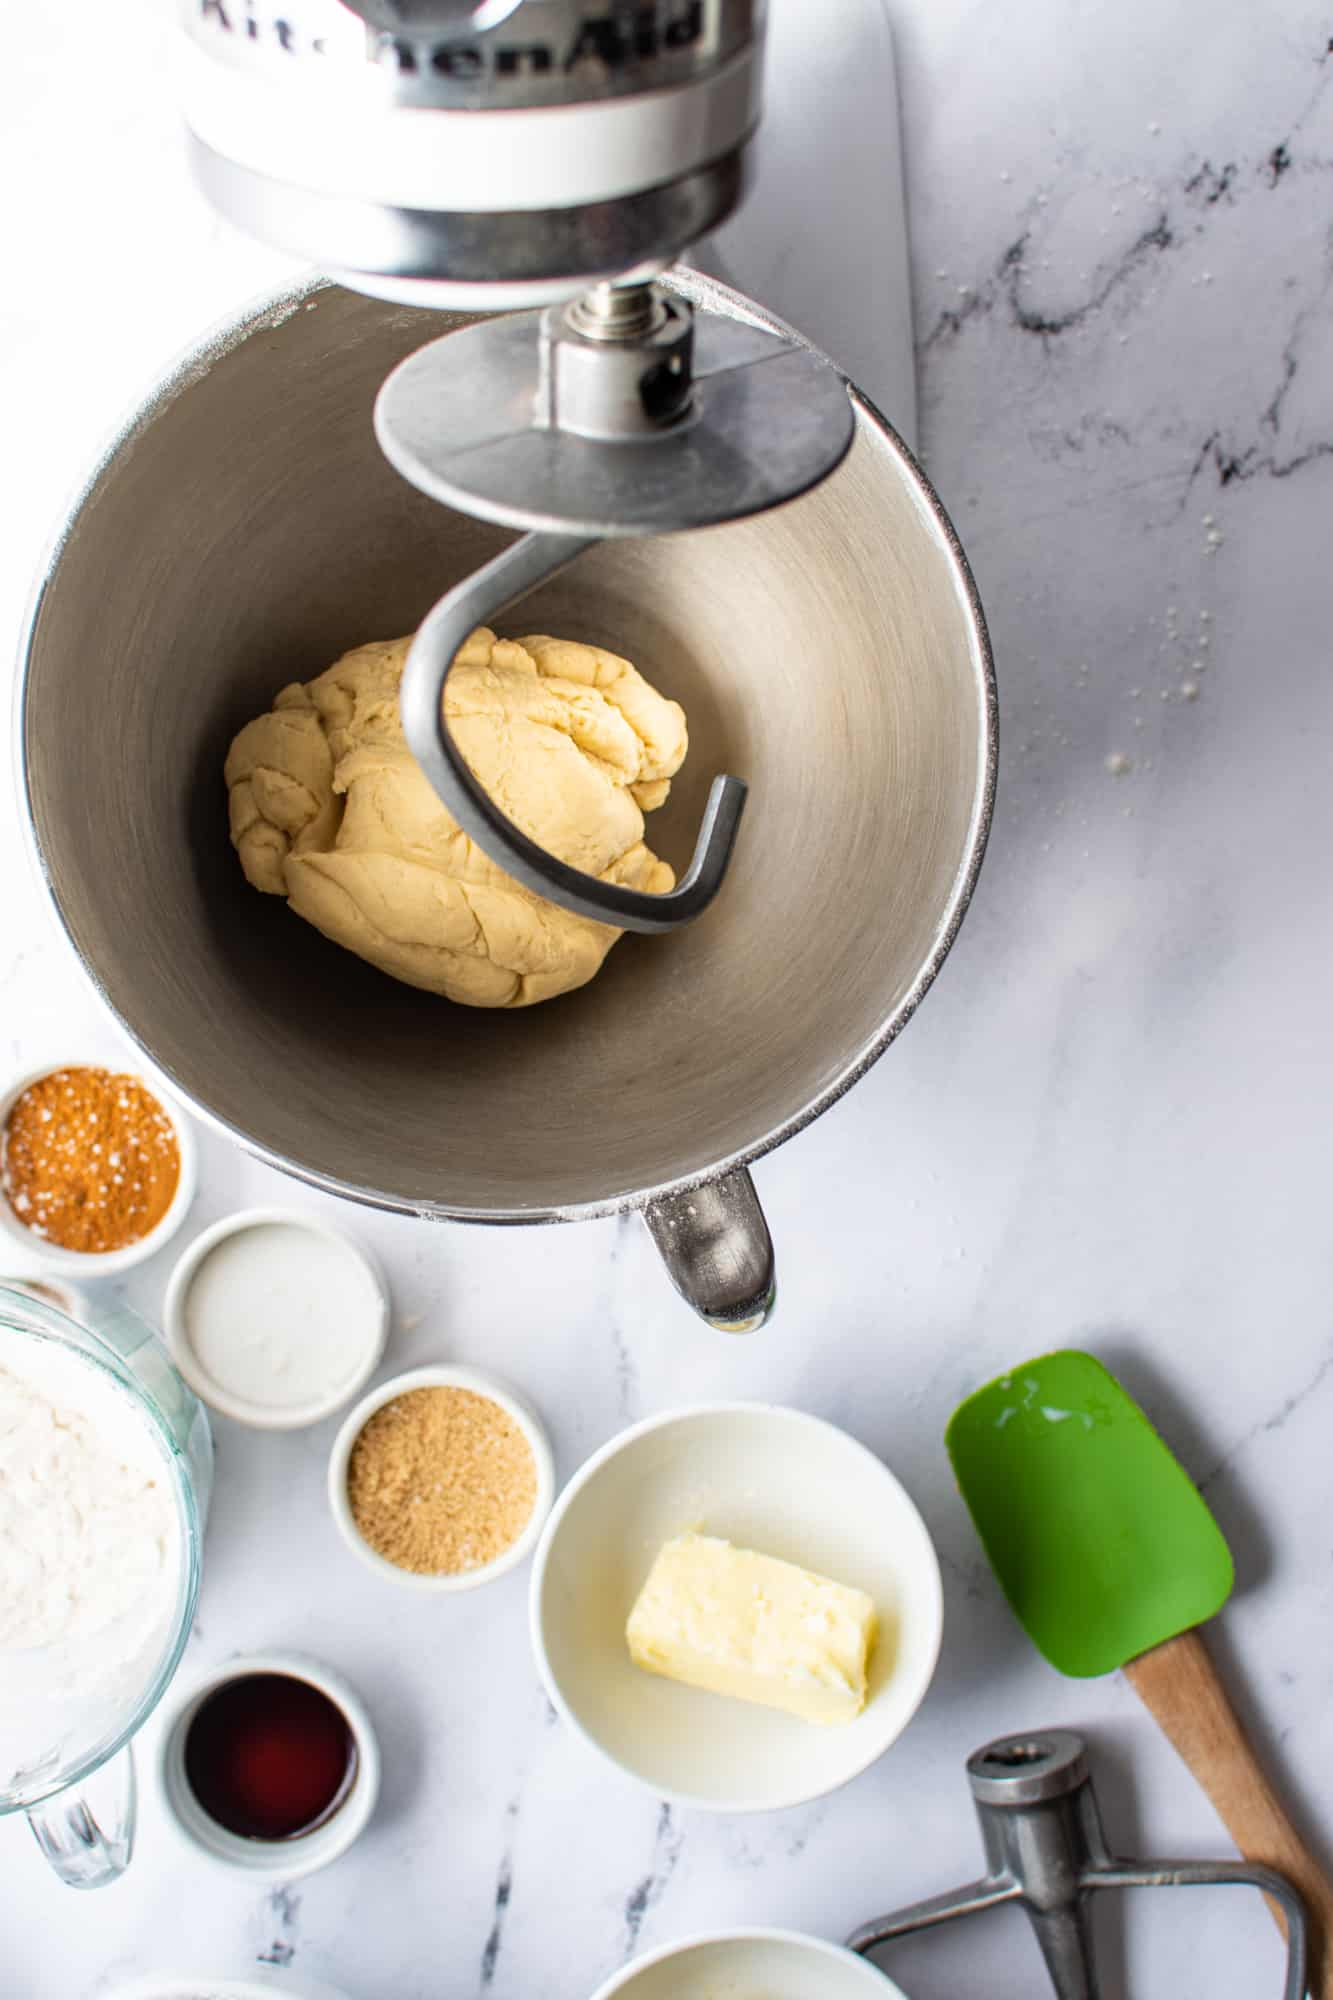 dough hook attached to stand mixer with cinnamon roll dough ball in the bottom of the stand mixer bowl